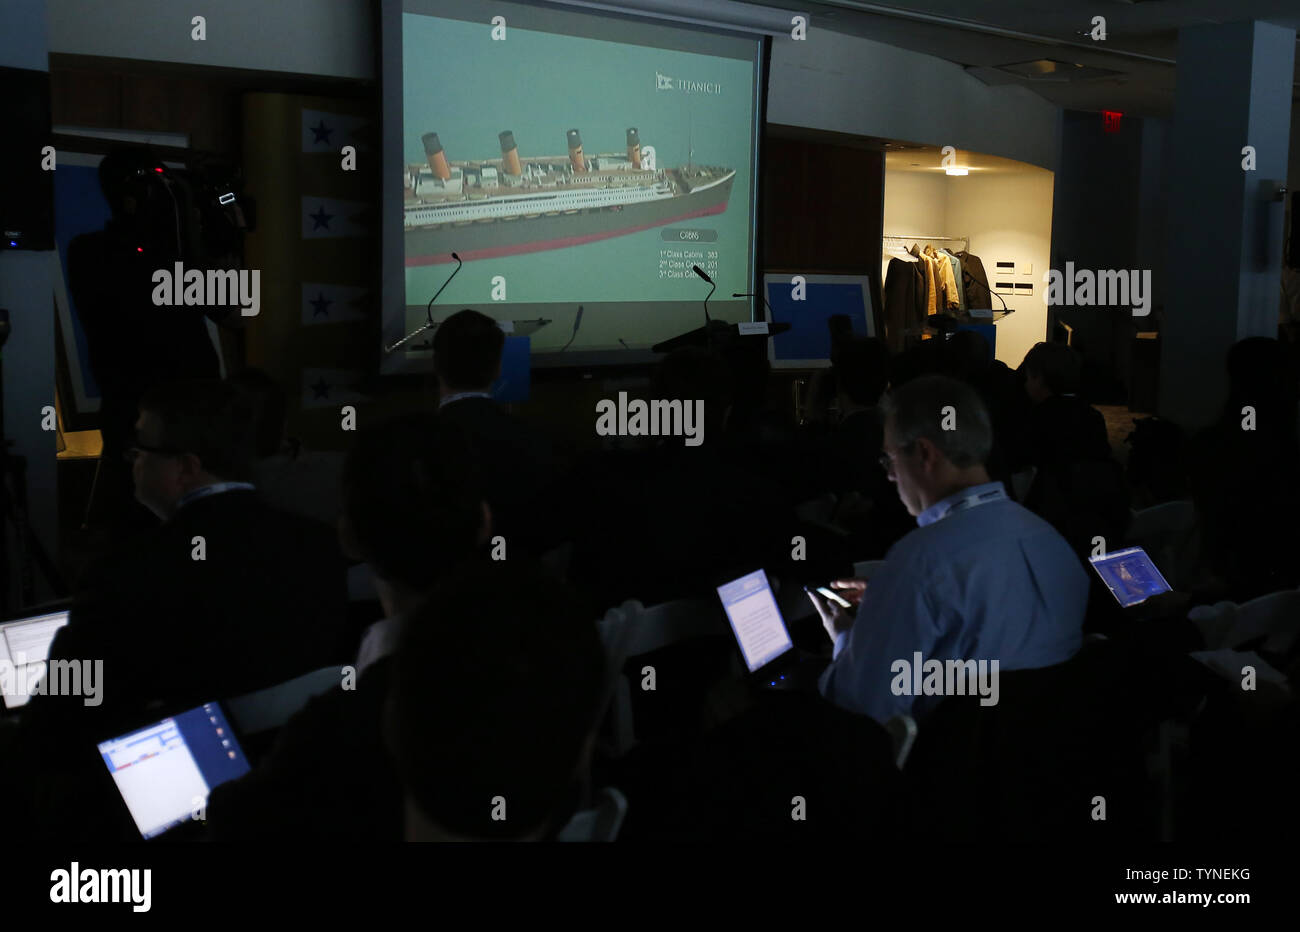 Members of the media watch a video before Australian billionaire and chairman of the shipping company Blue Star Line, Clive Palmer, discusses plans for the company's planned Titanic II cruise ship at the Intrepid Sea, Air & Space Museum in New York City on February 26 2013. The ship was designed by marine engineering company Deltamarin Ltd. of Raisio, Finland, and is scheduled to be completed by 2016 by the CSC Jinling Shipyard Co. in China.    UPI/John Angelillo - Stock Image